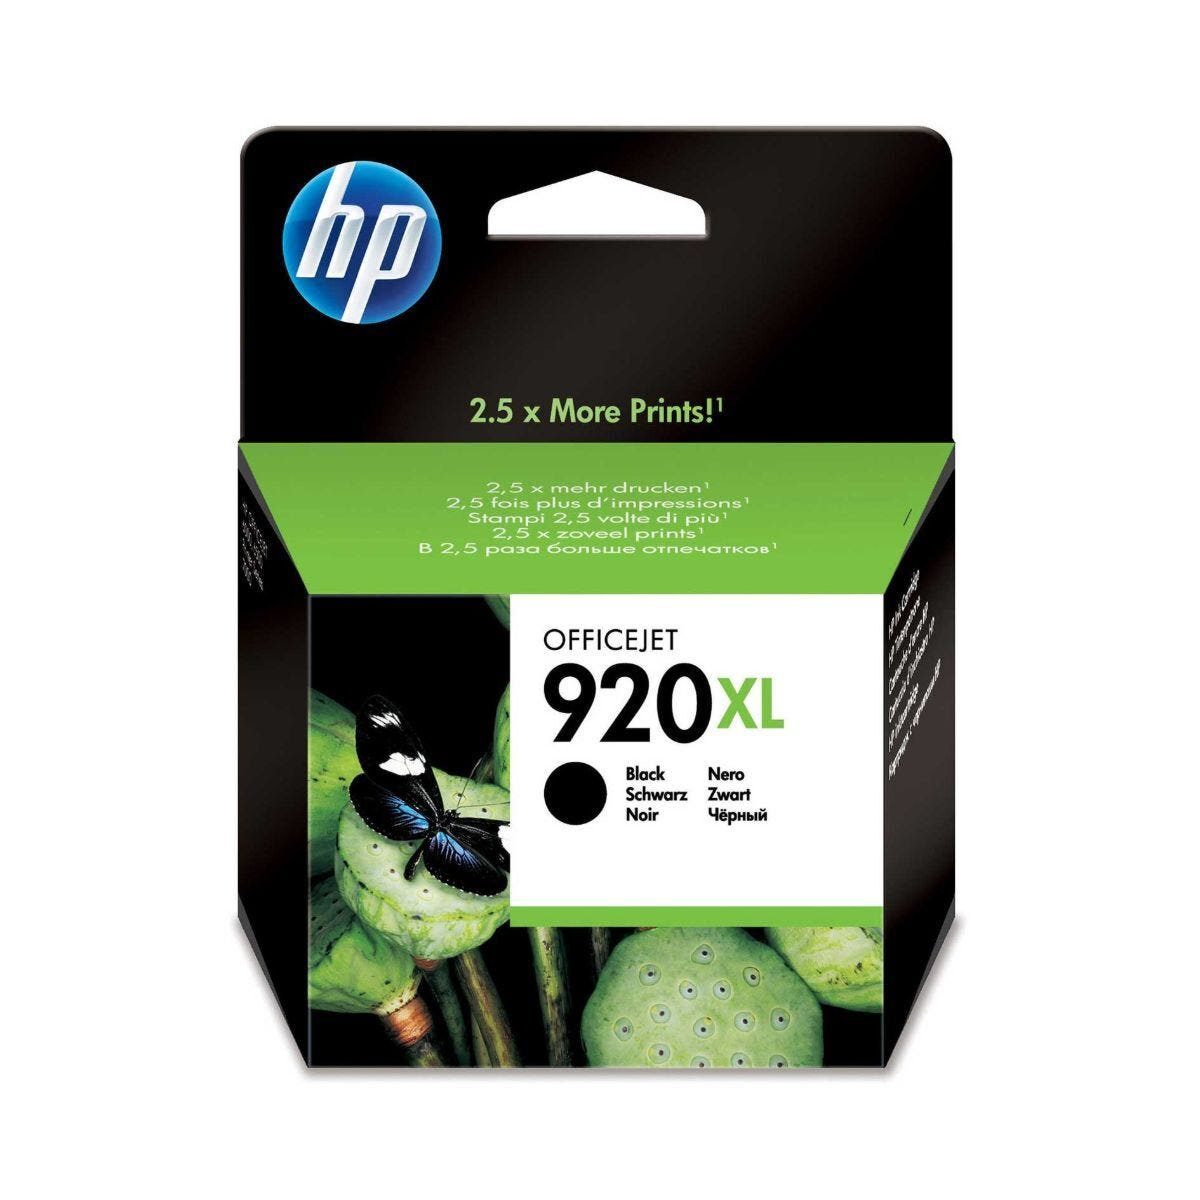 HP 920XL Inkjet Cartridge